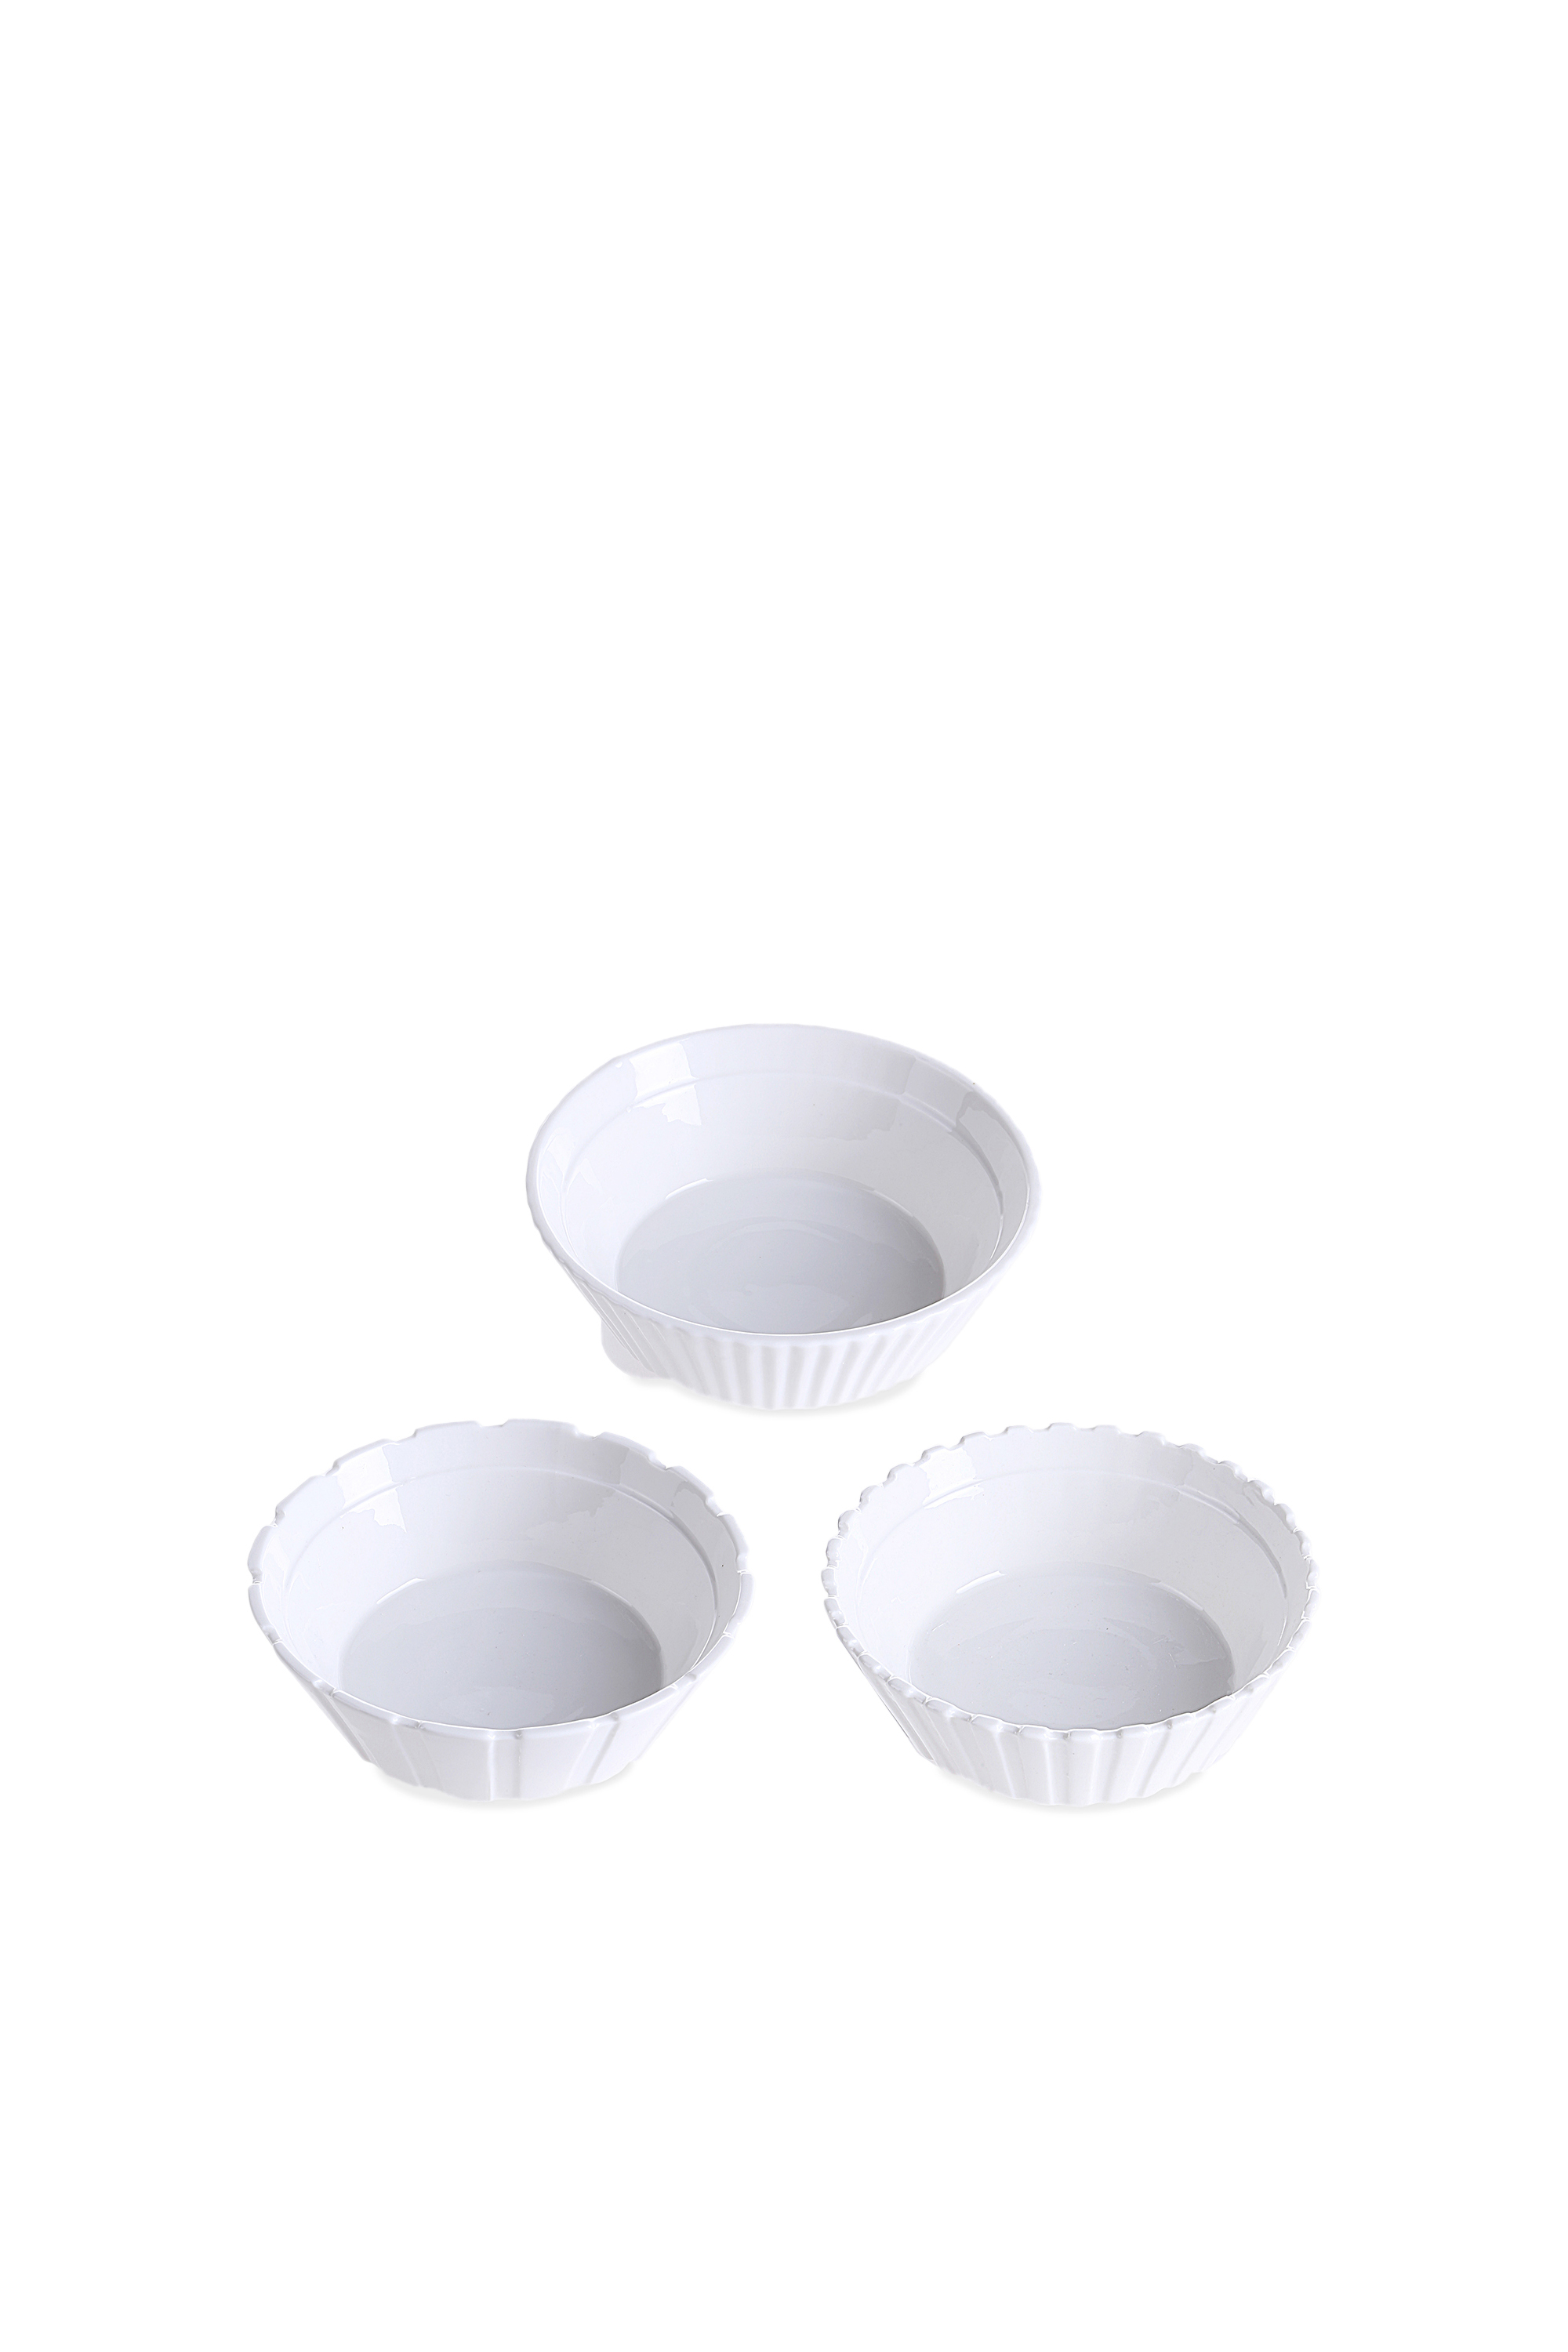 Diesel Bowl HA000 - White